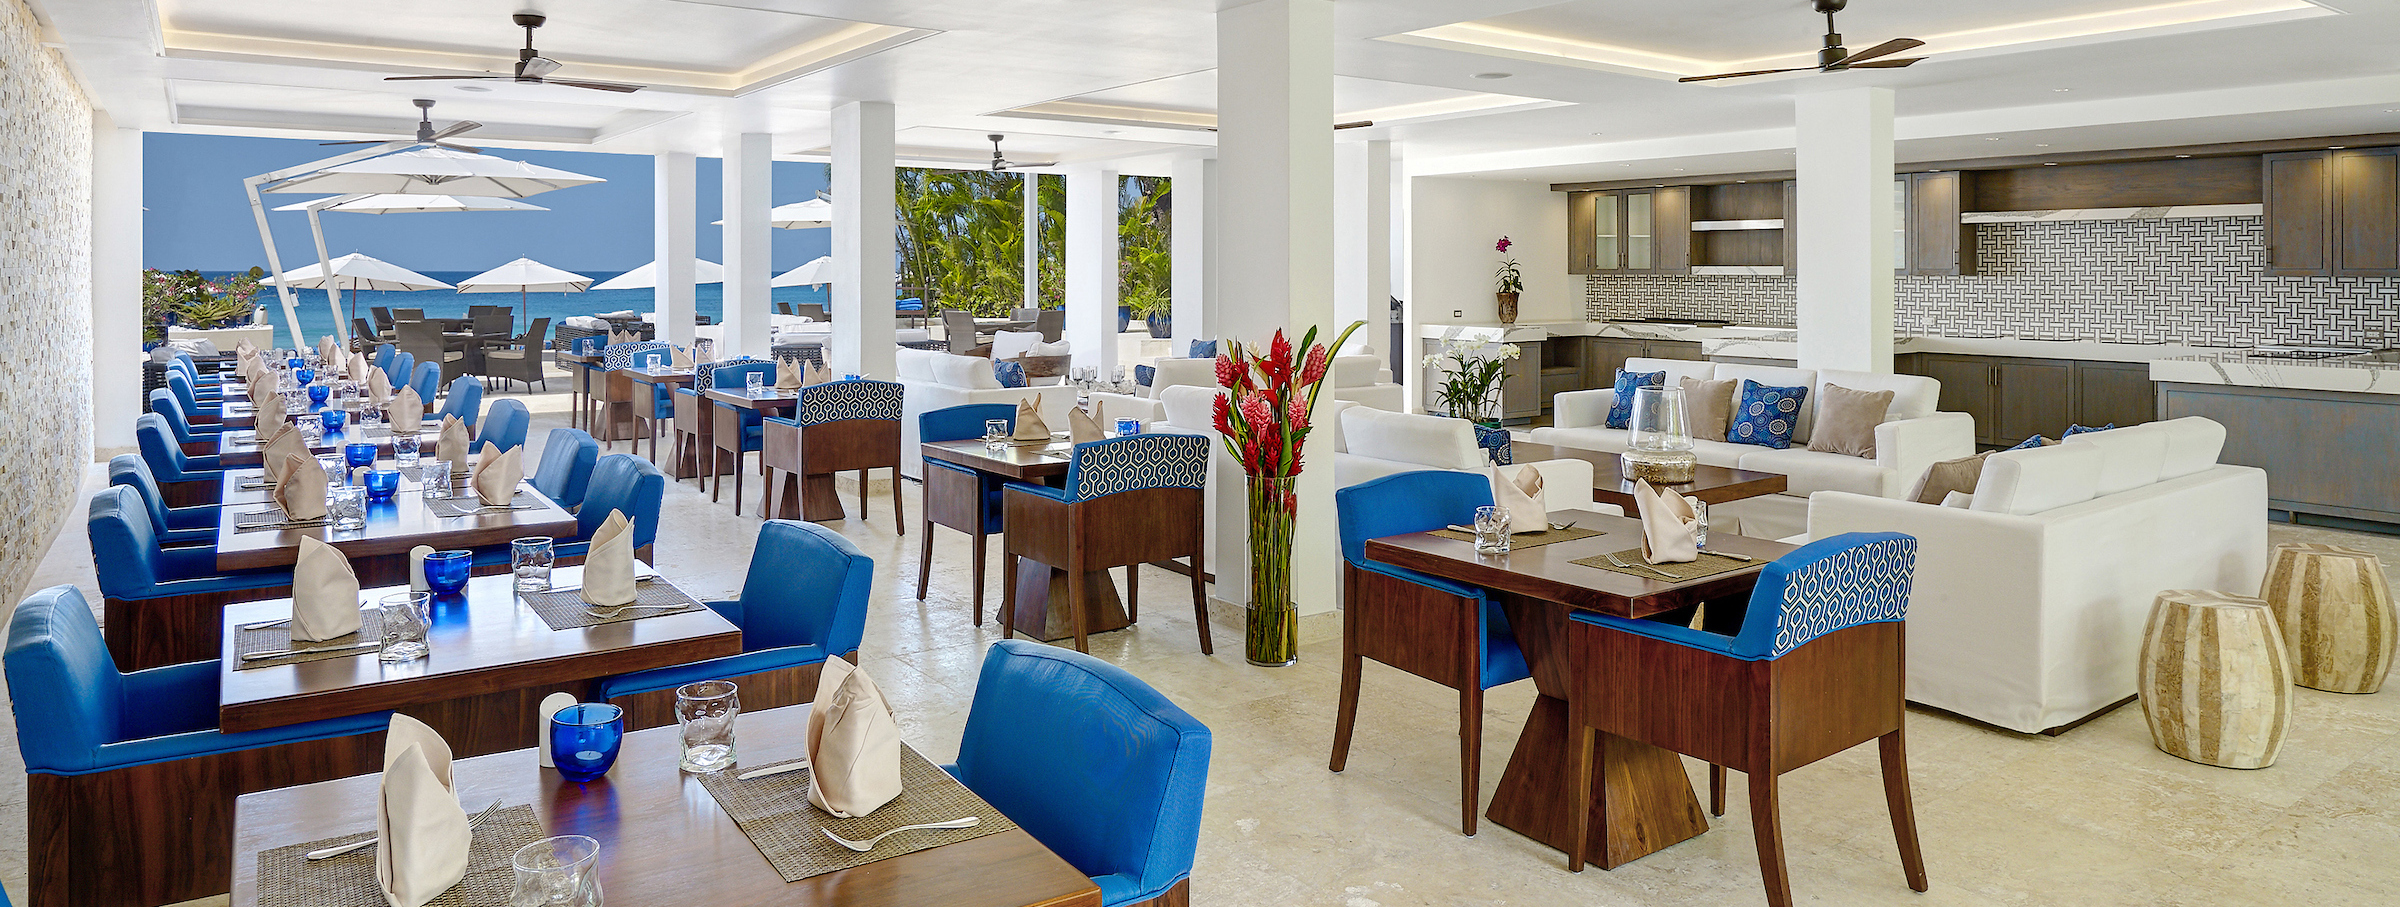 the-house-barbados-dining-room